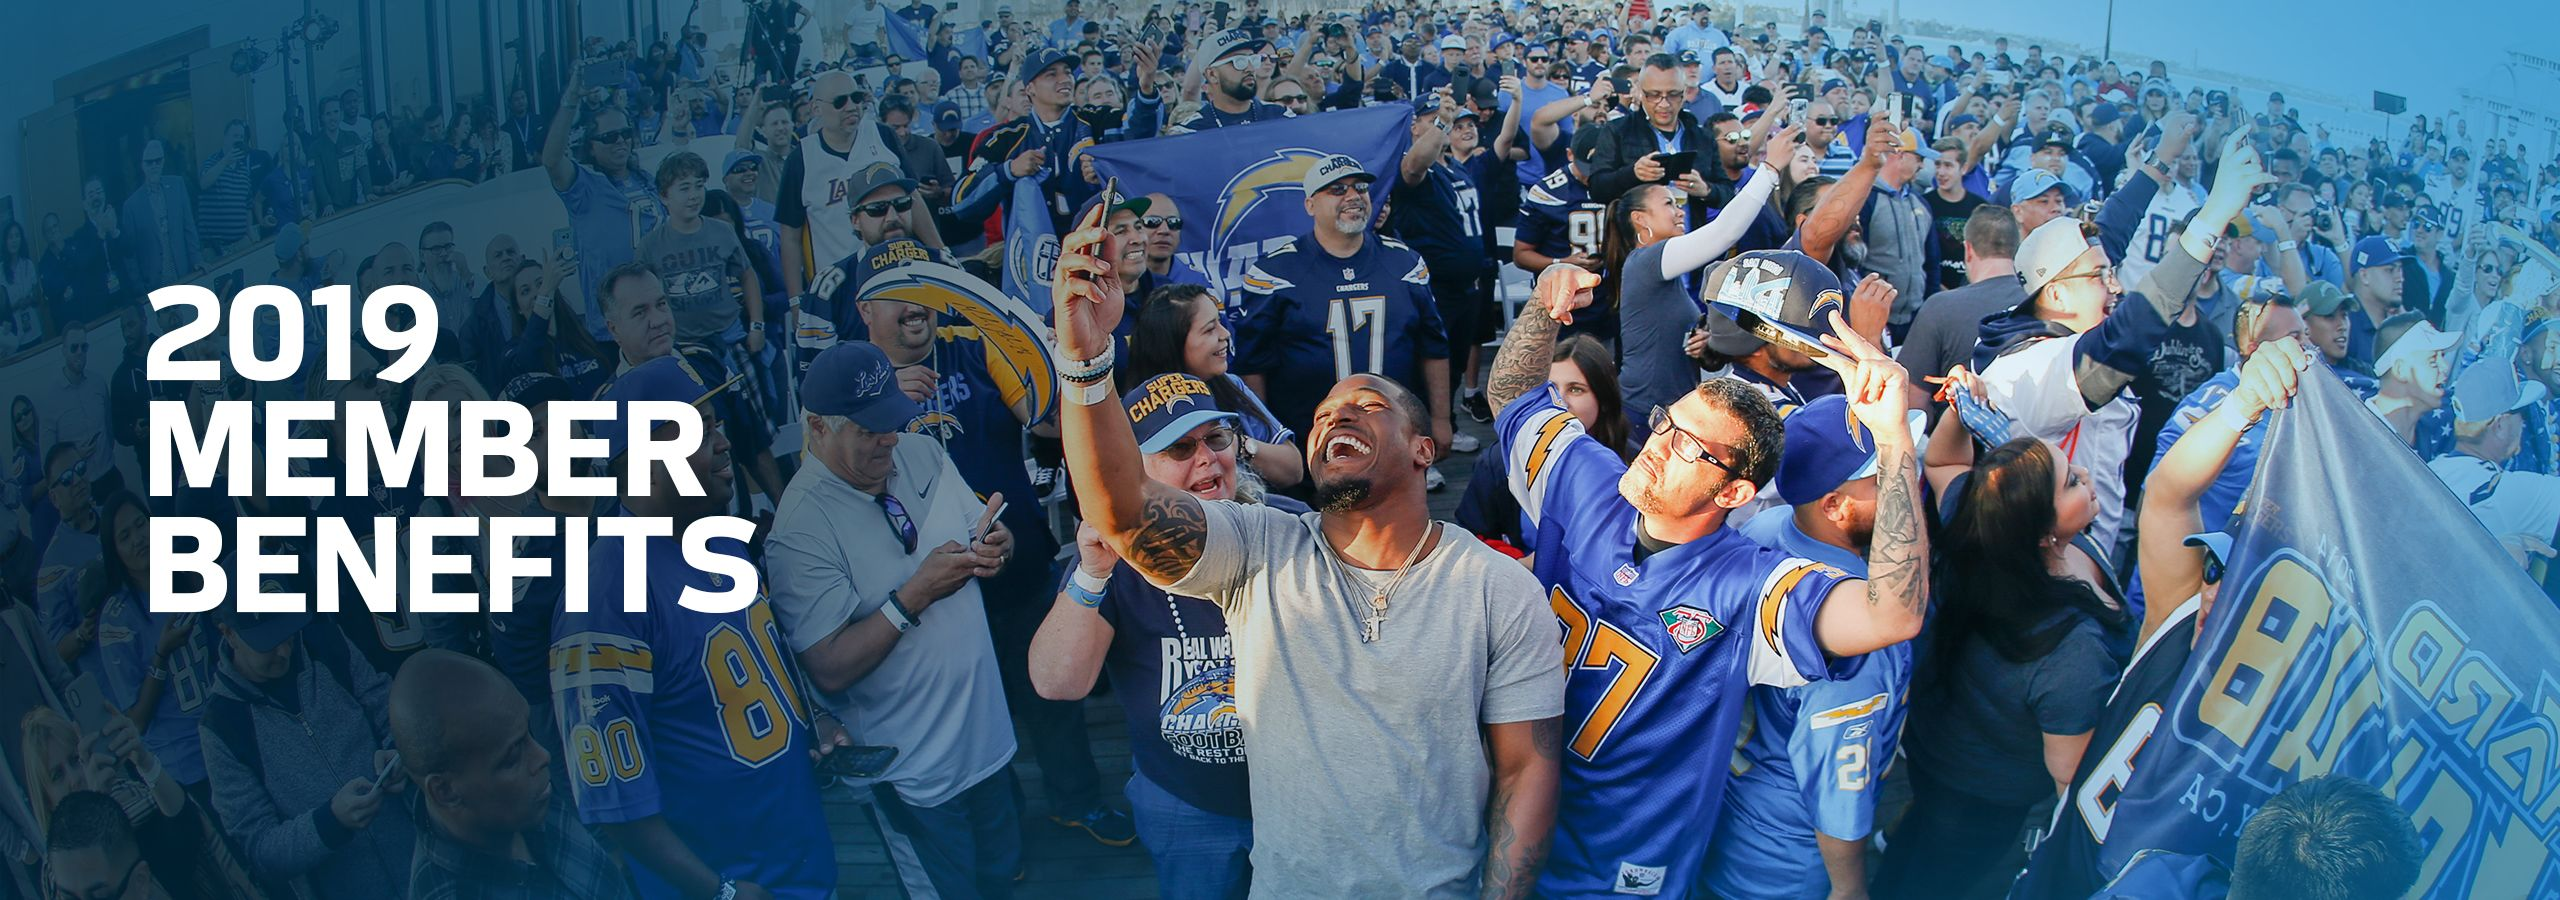 Chargers Member Benefits Los Angeles Chargers Chargers Com